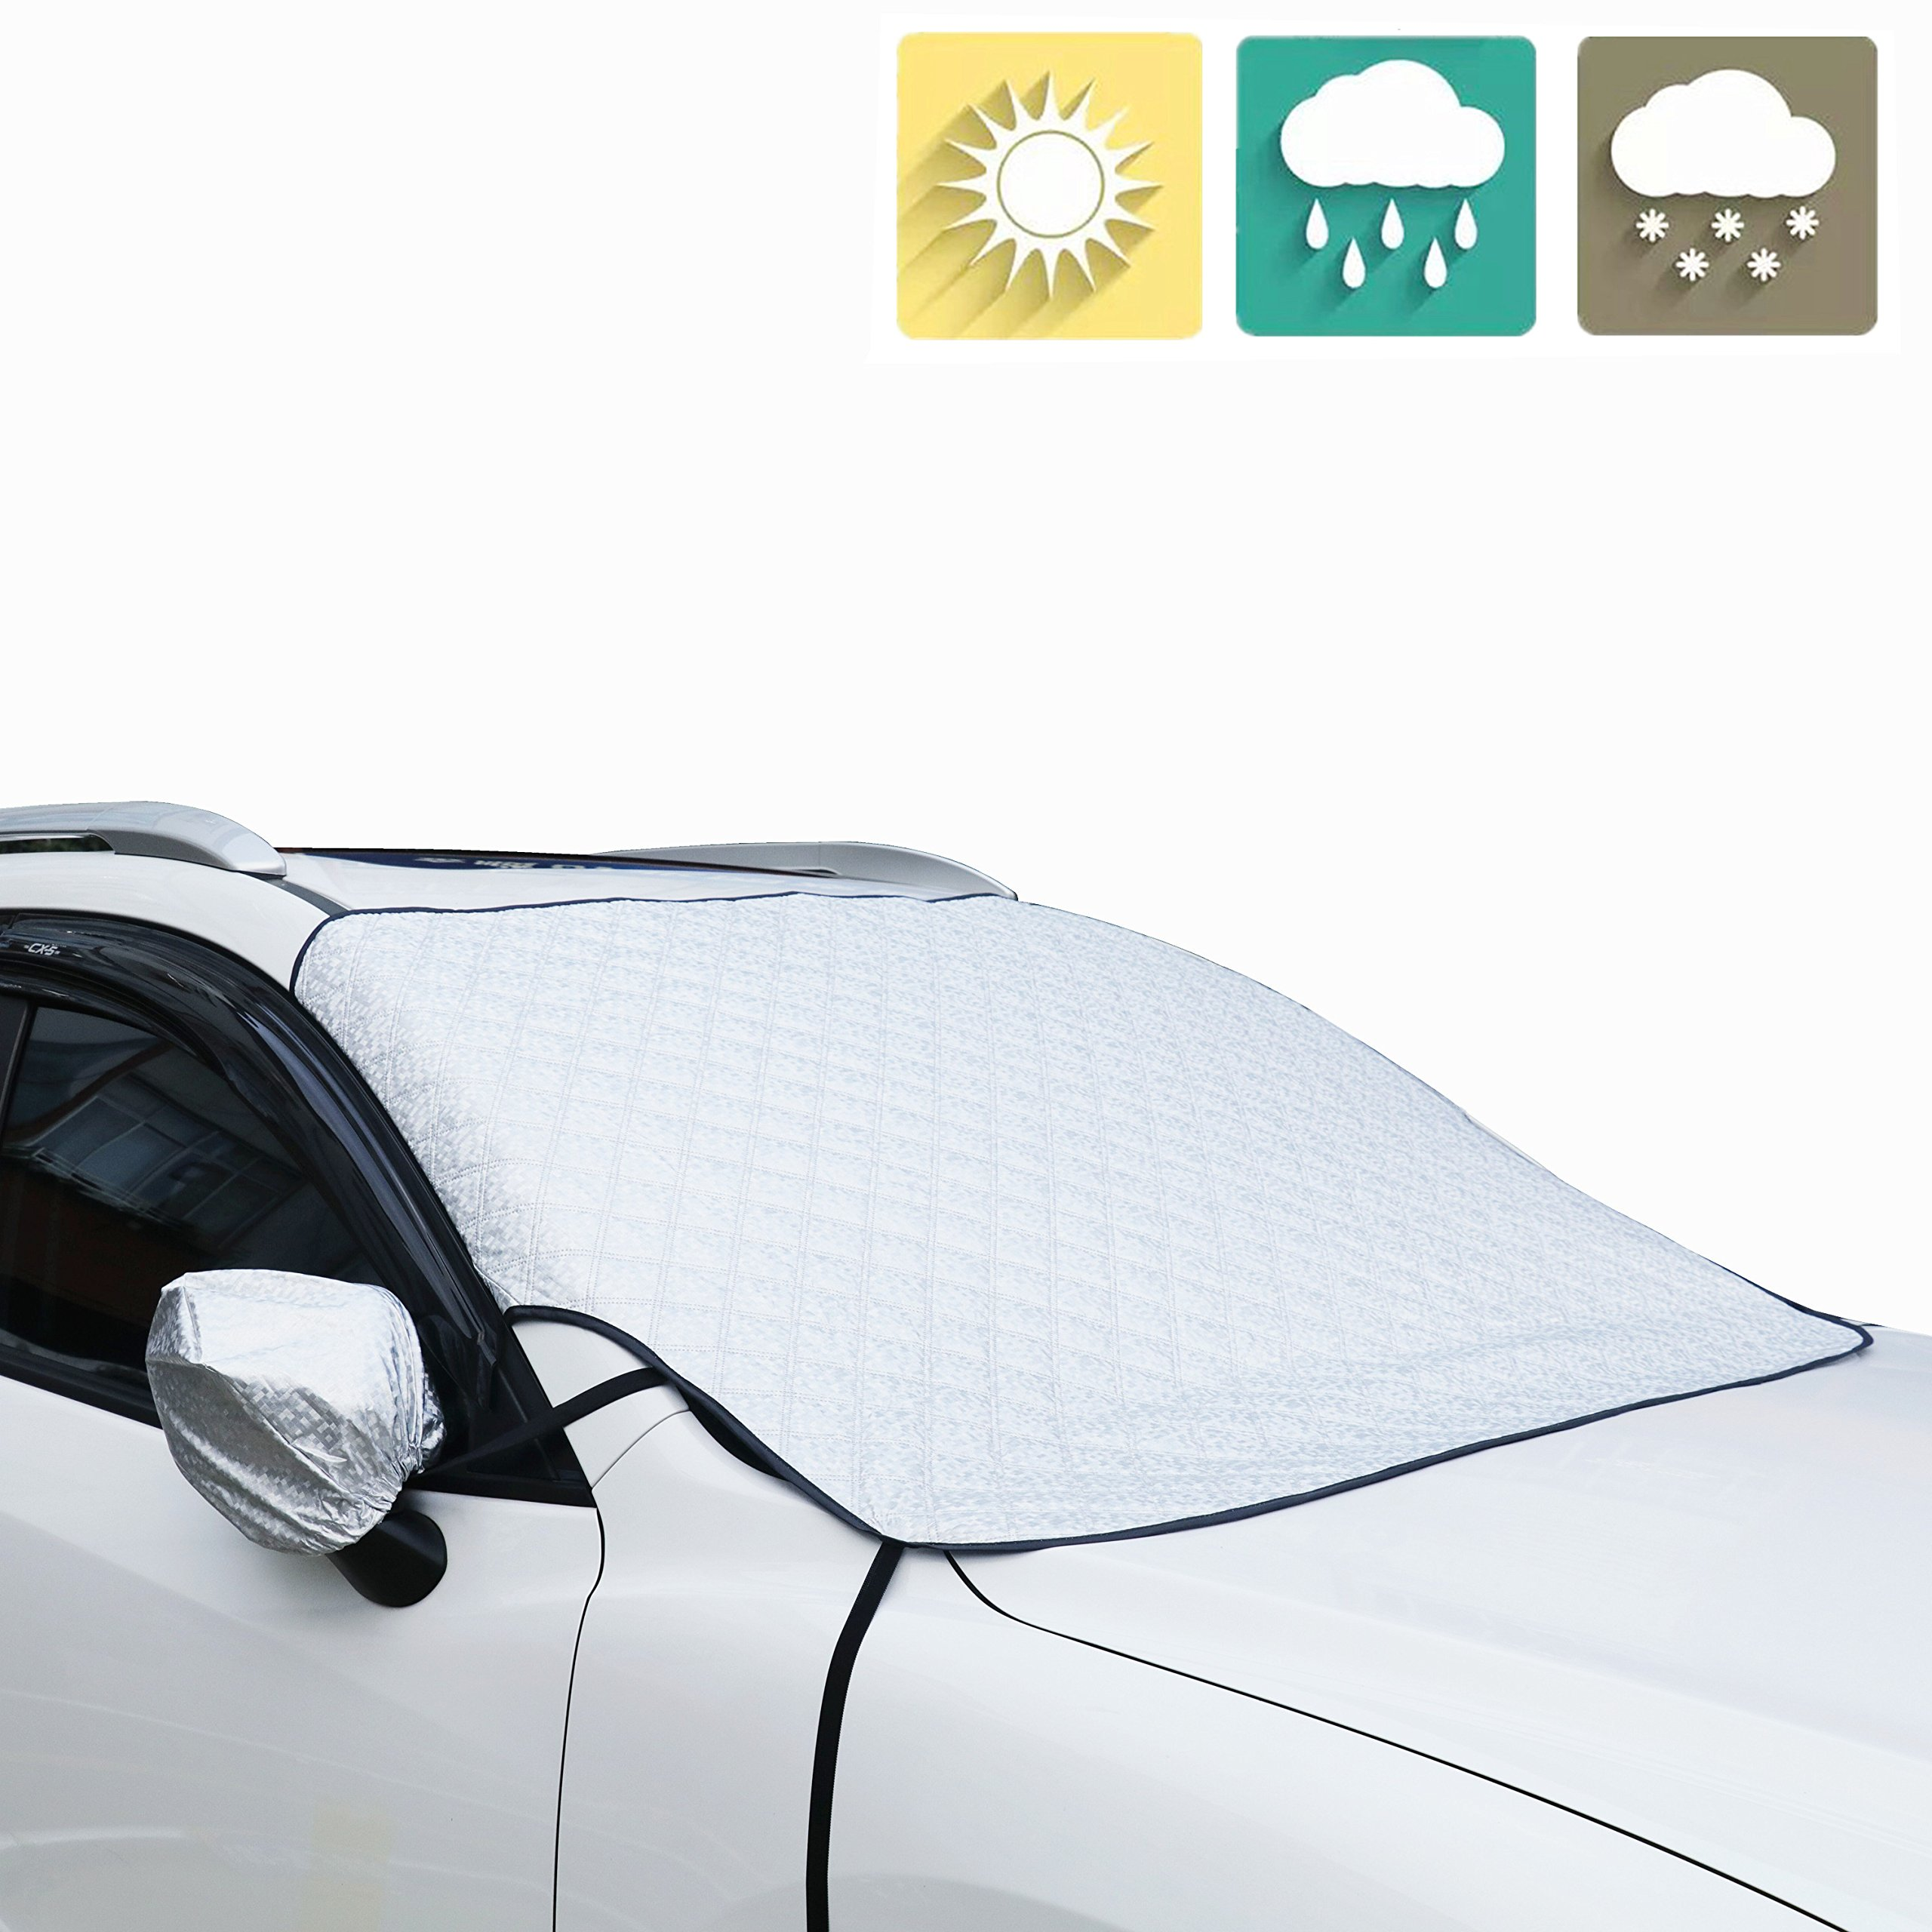 Liobaba Car Windshield Sunshades Cover Casual Foldable Front Rear Sun Reflective Shade